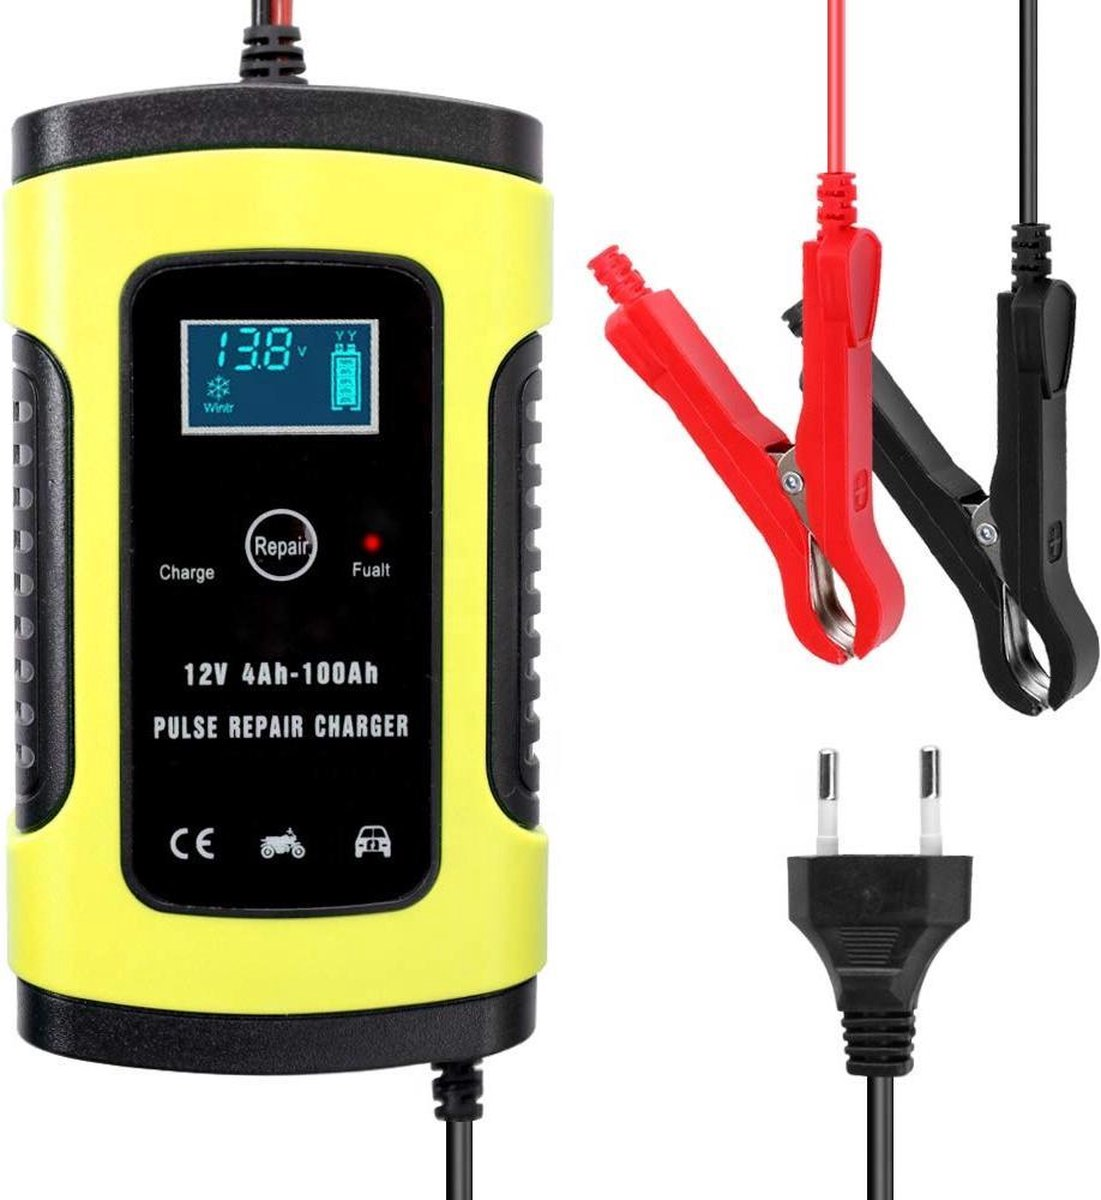 Acculader - Druppellader - Acculader voor Auto Motor Scooter Boot Camper - Reparatie Modus - 12V 6A